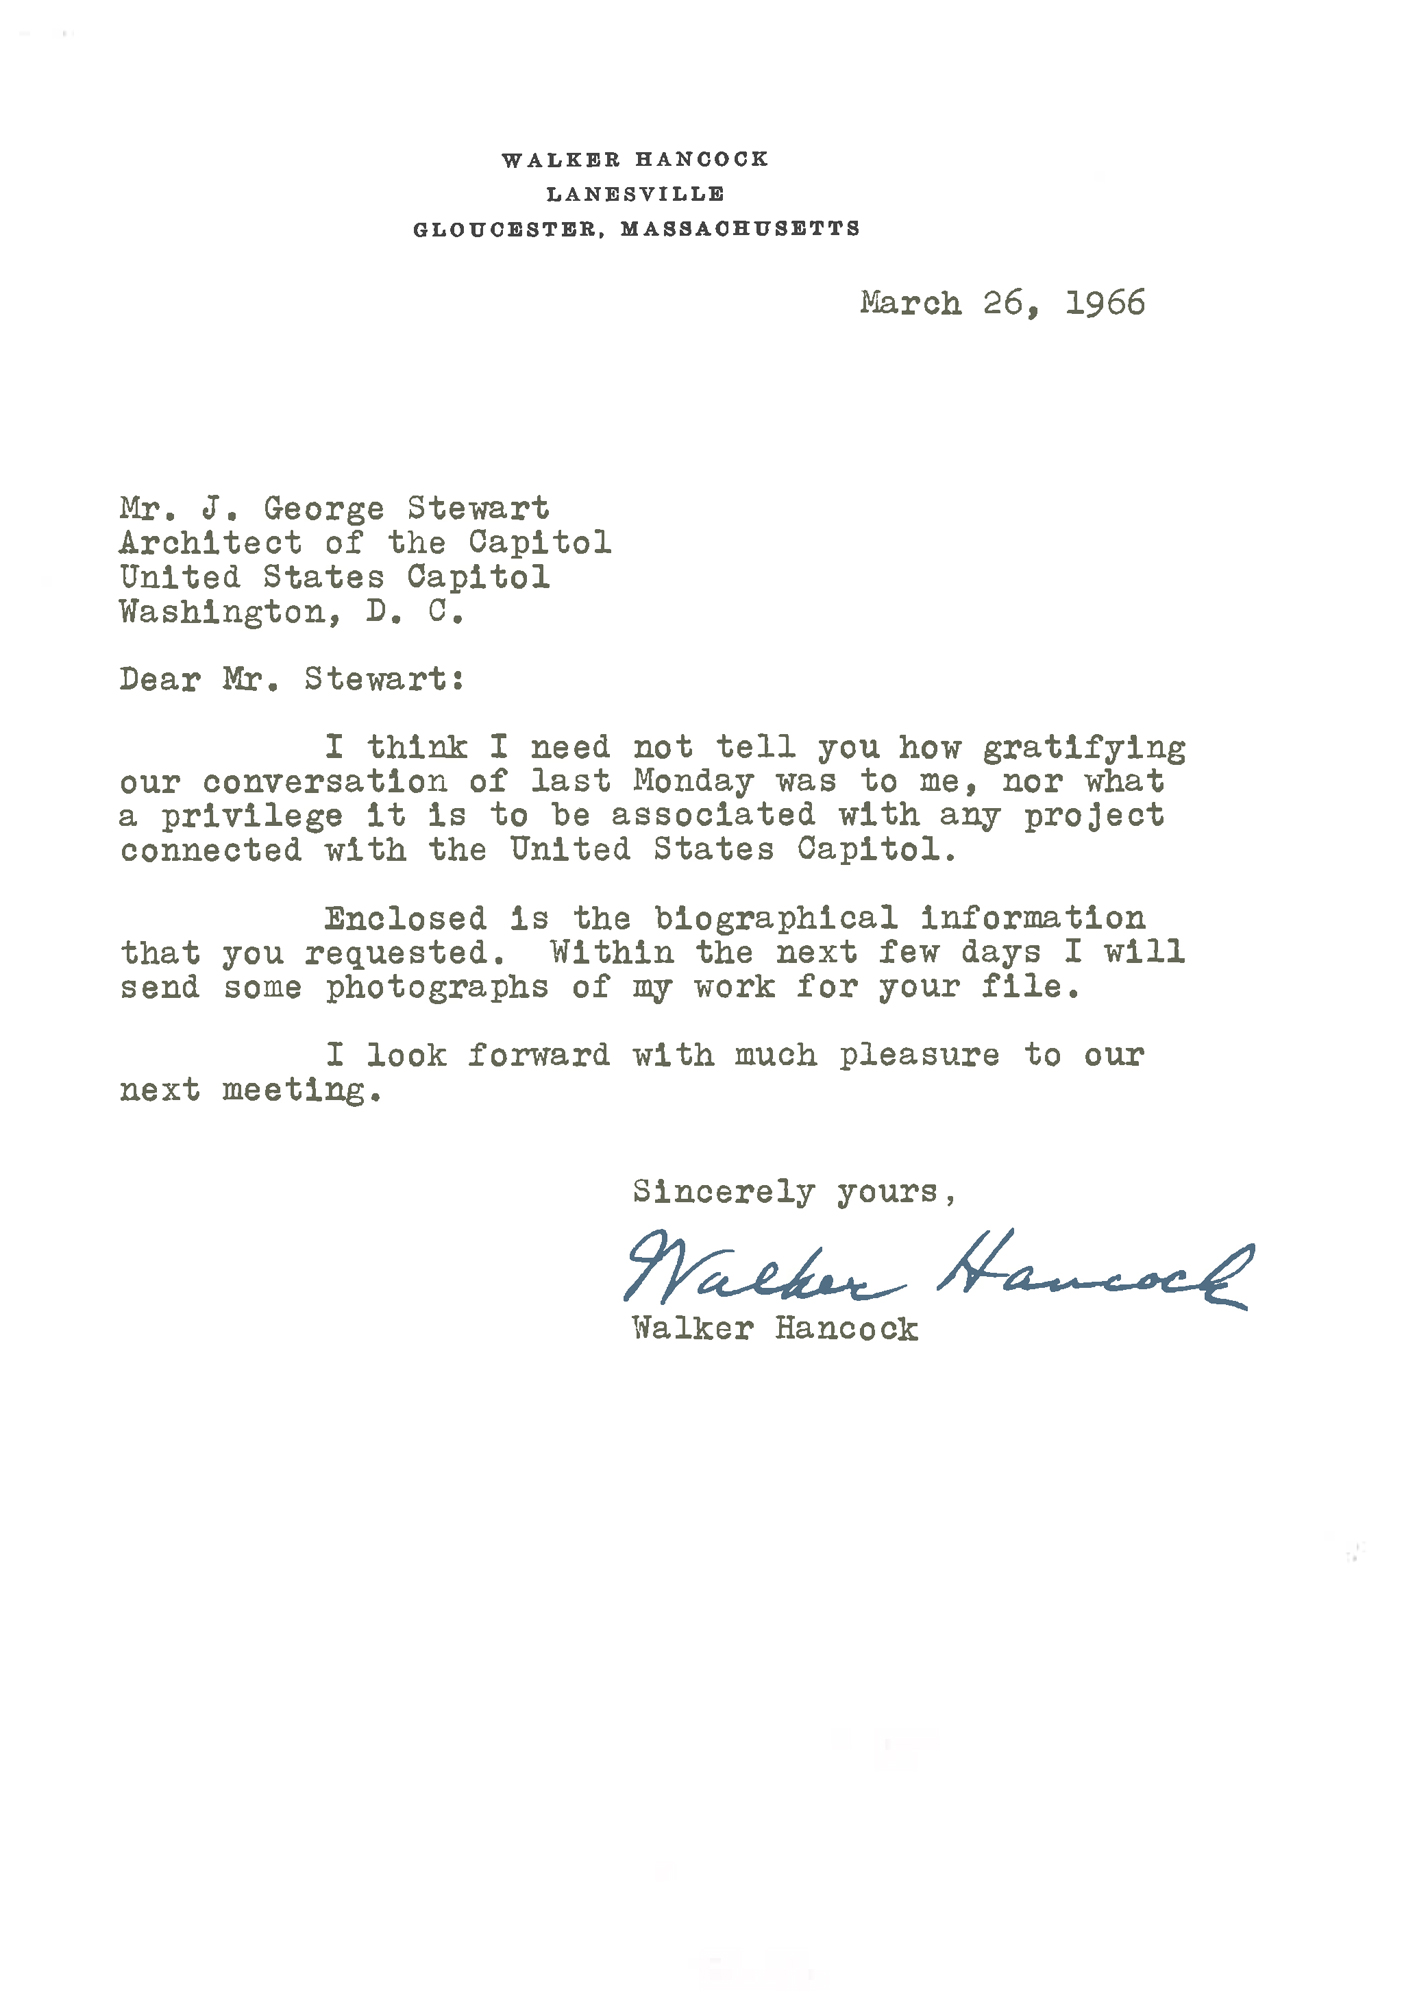 Letter from Walker Hancock to George Stewart